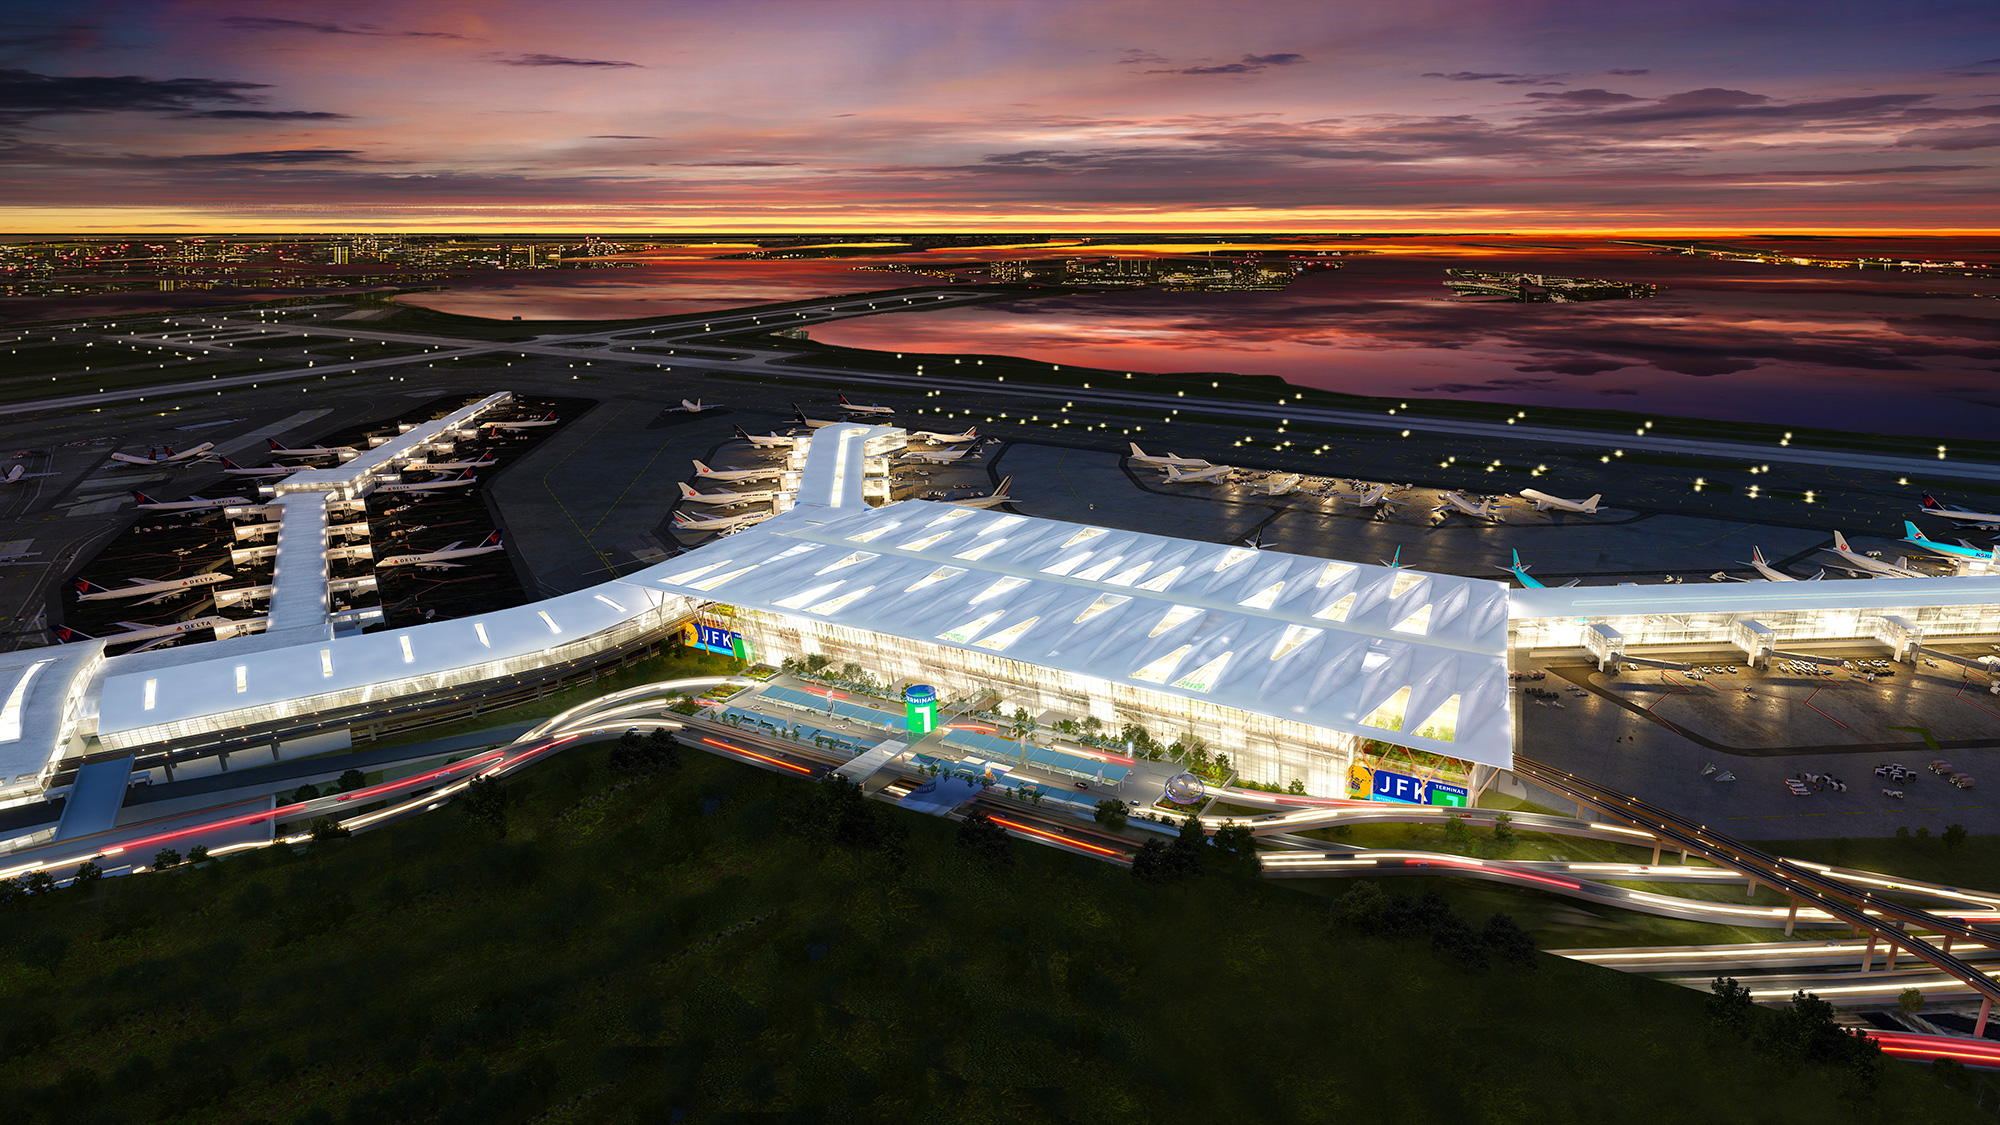 A rendering of the new Terminal 1 coming to JFK.